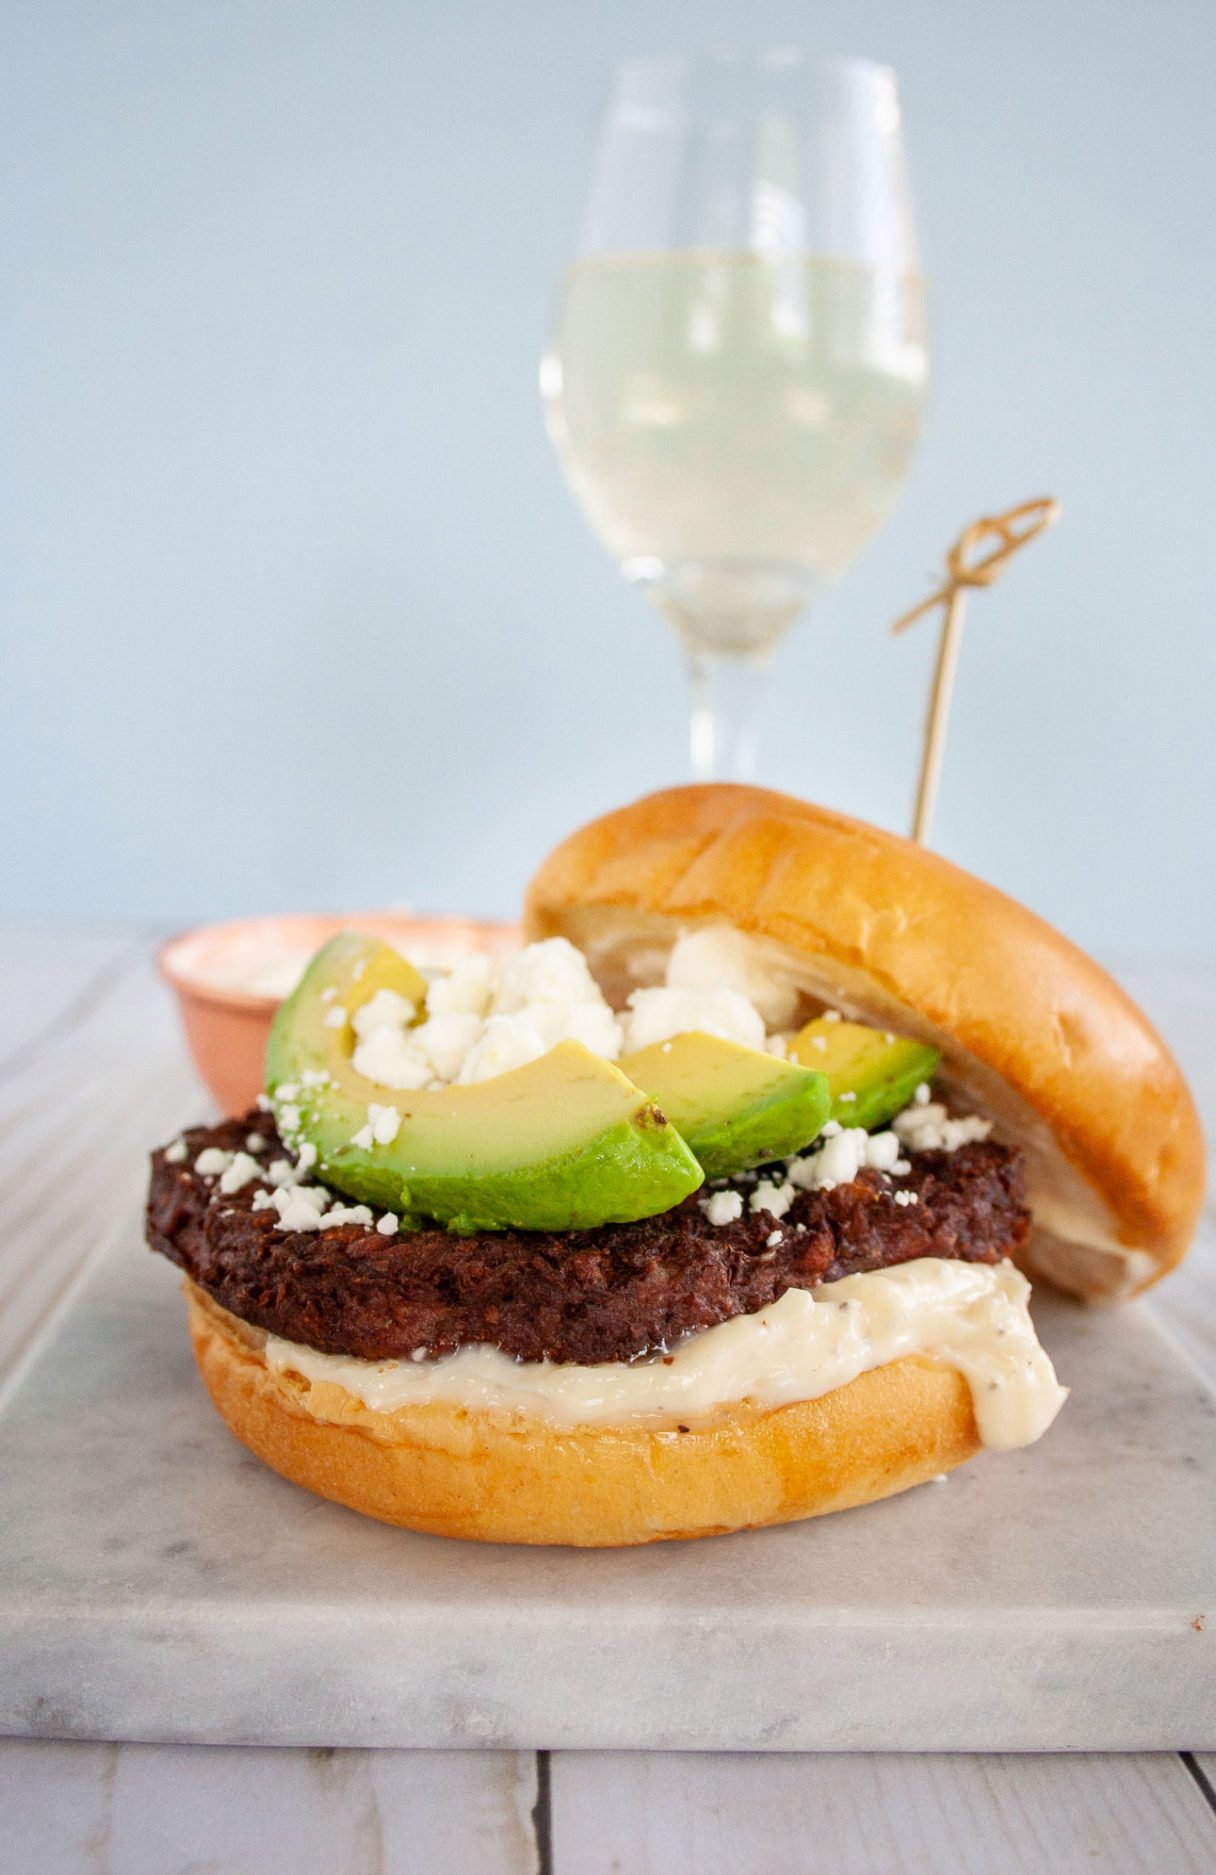 Msg 21+ Wether you're looking for Meatless Monday recipes or for a fun way to entertain these grilled meatless Burger and Wine Pairings are sure to be a satisfying hit. With recipes for pairing wine to a Mushroom Swiss Burger, Avocado Burger, and a Greek Burger. #ad #MorningStarFarms #MakeRoomOnYourGrill #GrillingRecipe #Burgers #Summerrecipes #Winepairing #winenight #meatlessmonday #meatlessrecipes